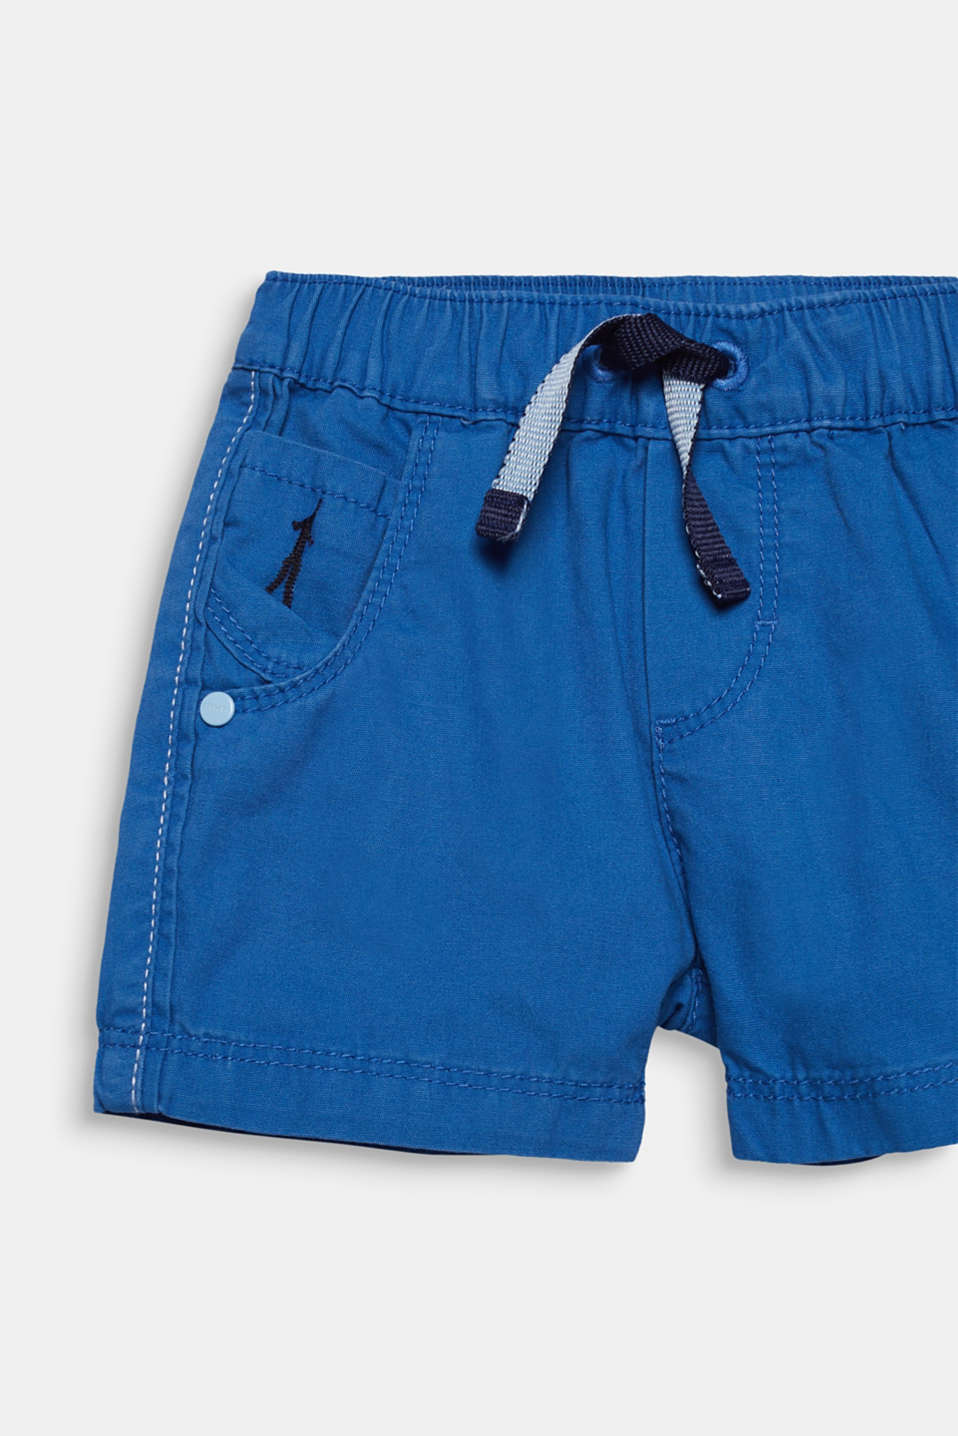 Woven shorts in 100% cotton, LCELECTRIC BLUE, detail image number 1